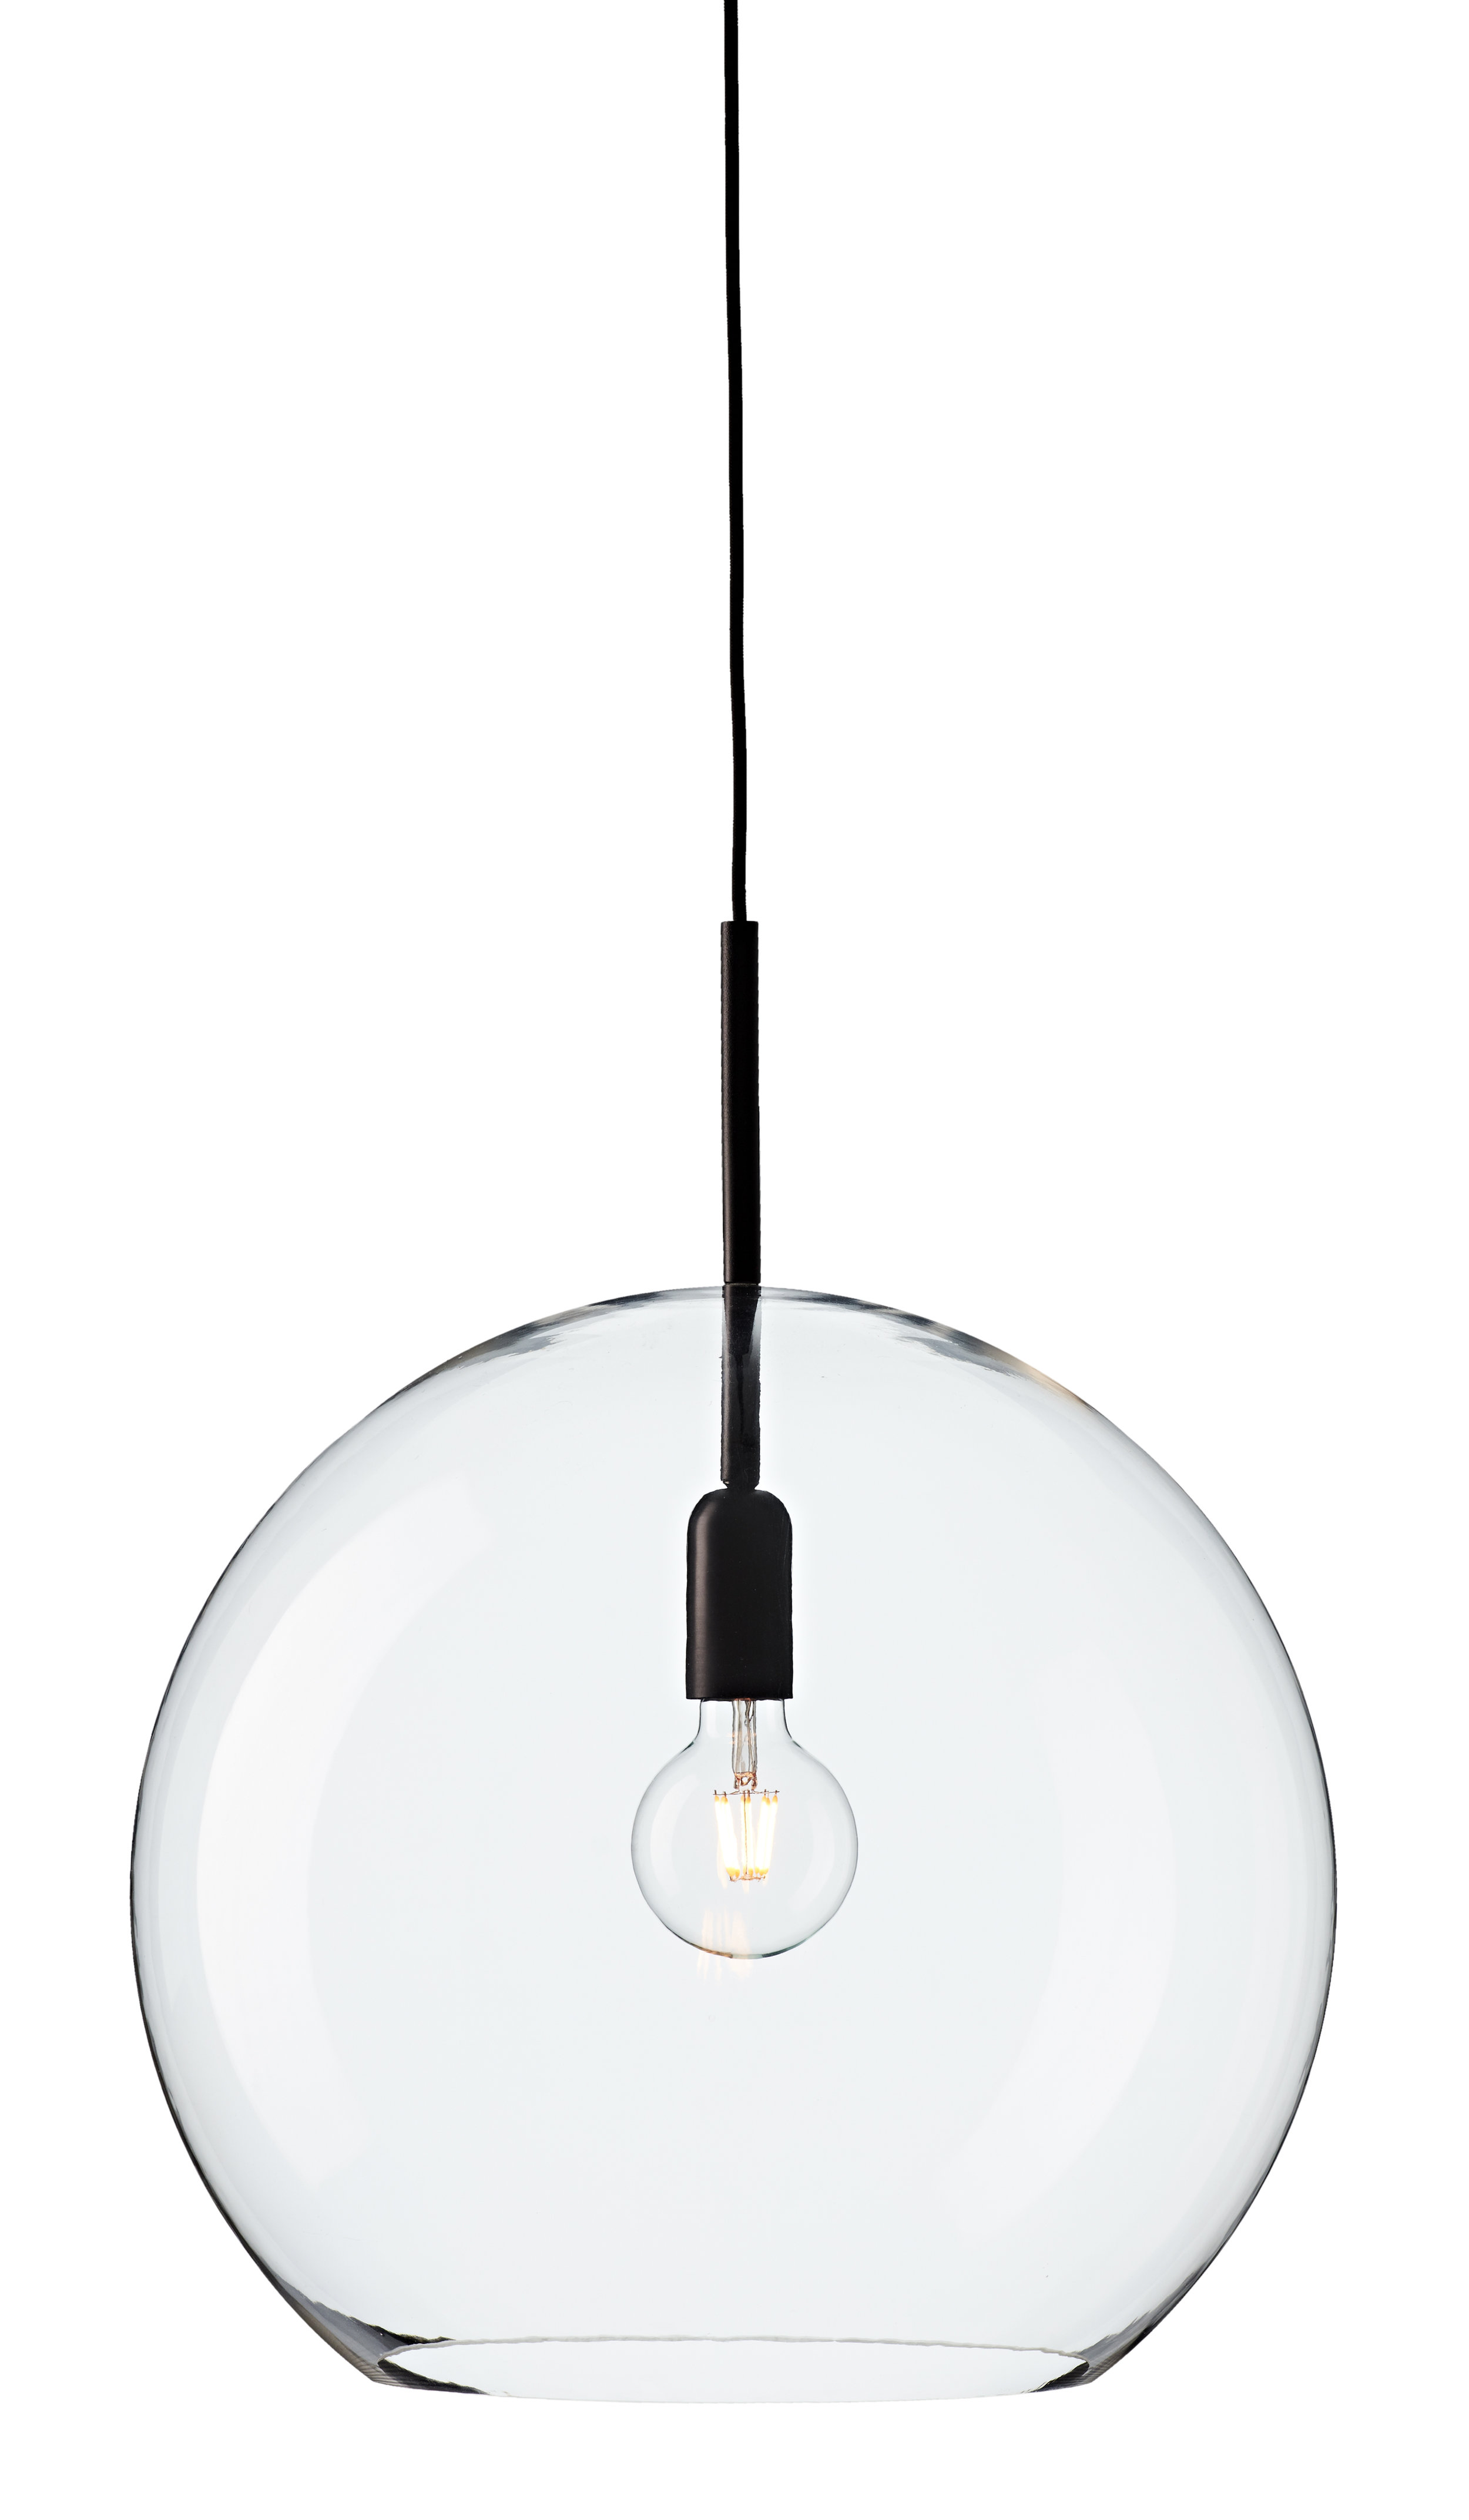 ISM Objects_Pop 500 Pendant_Clear_01.jpg